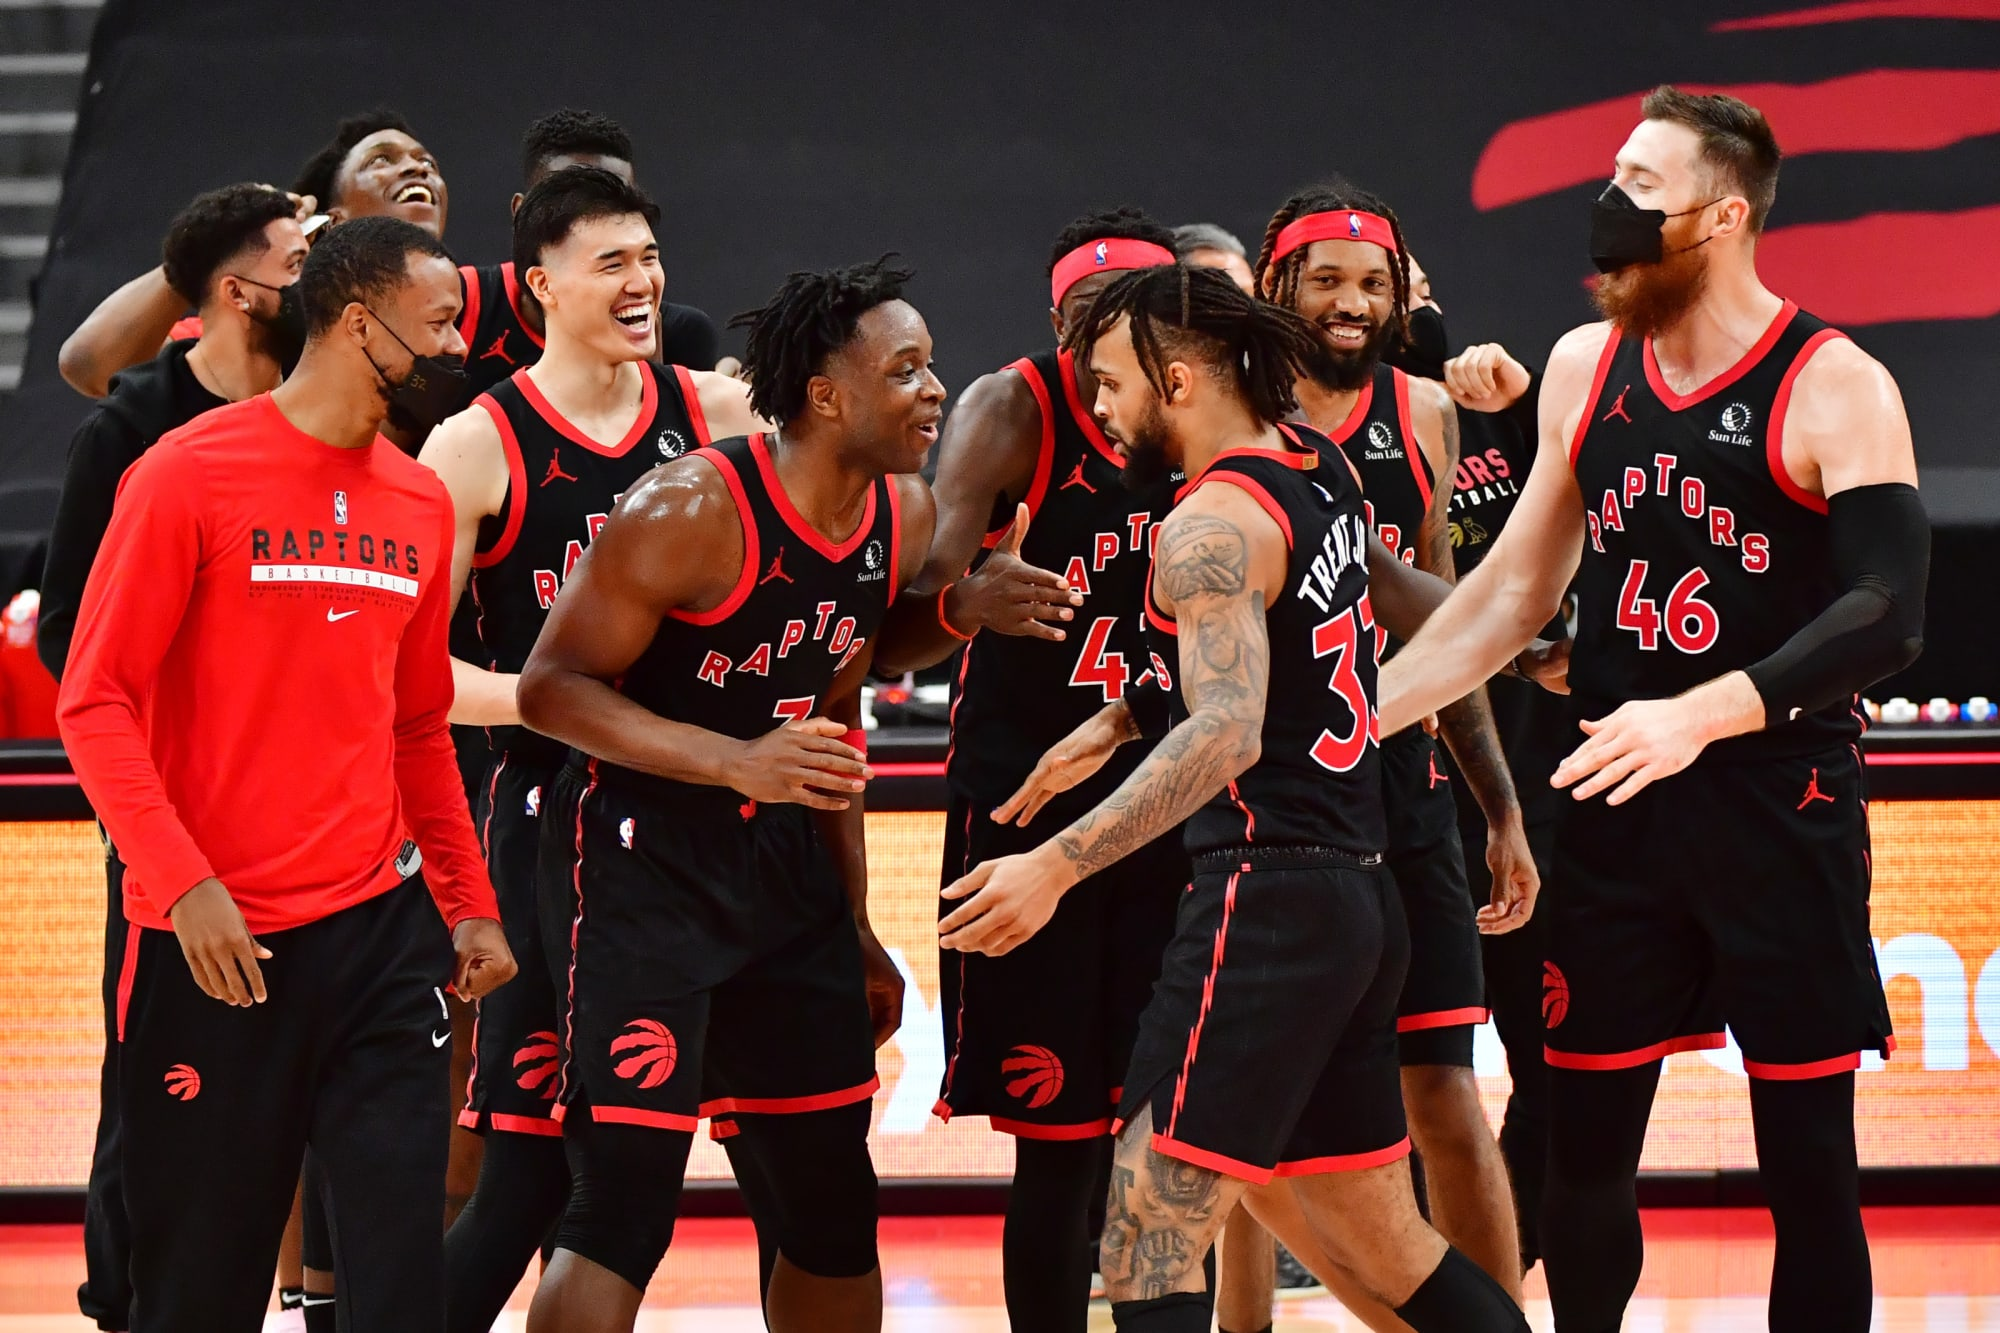 Toronto Raptors: Fans still have plenty of reasons to cheer amid rough season